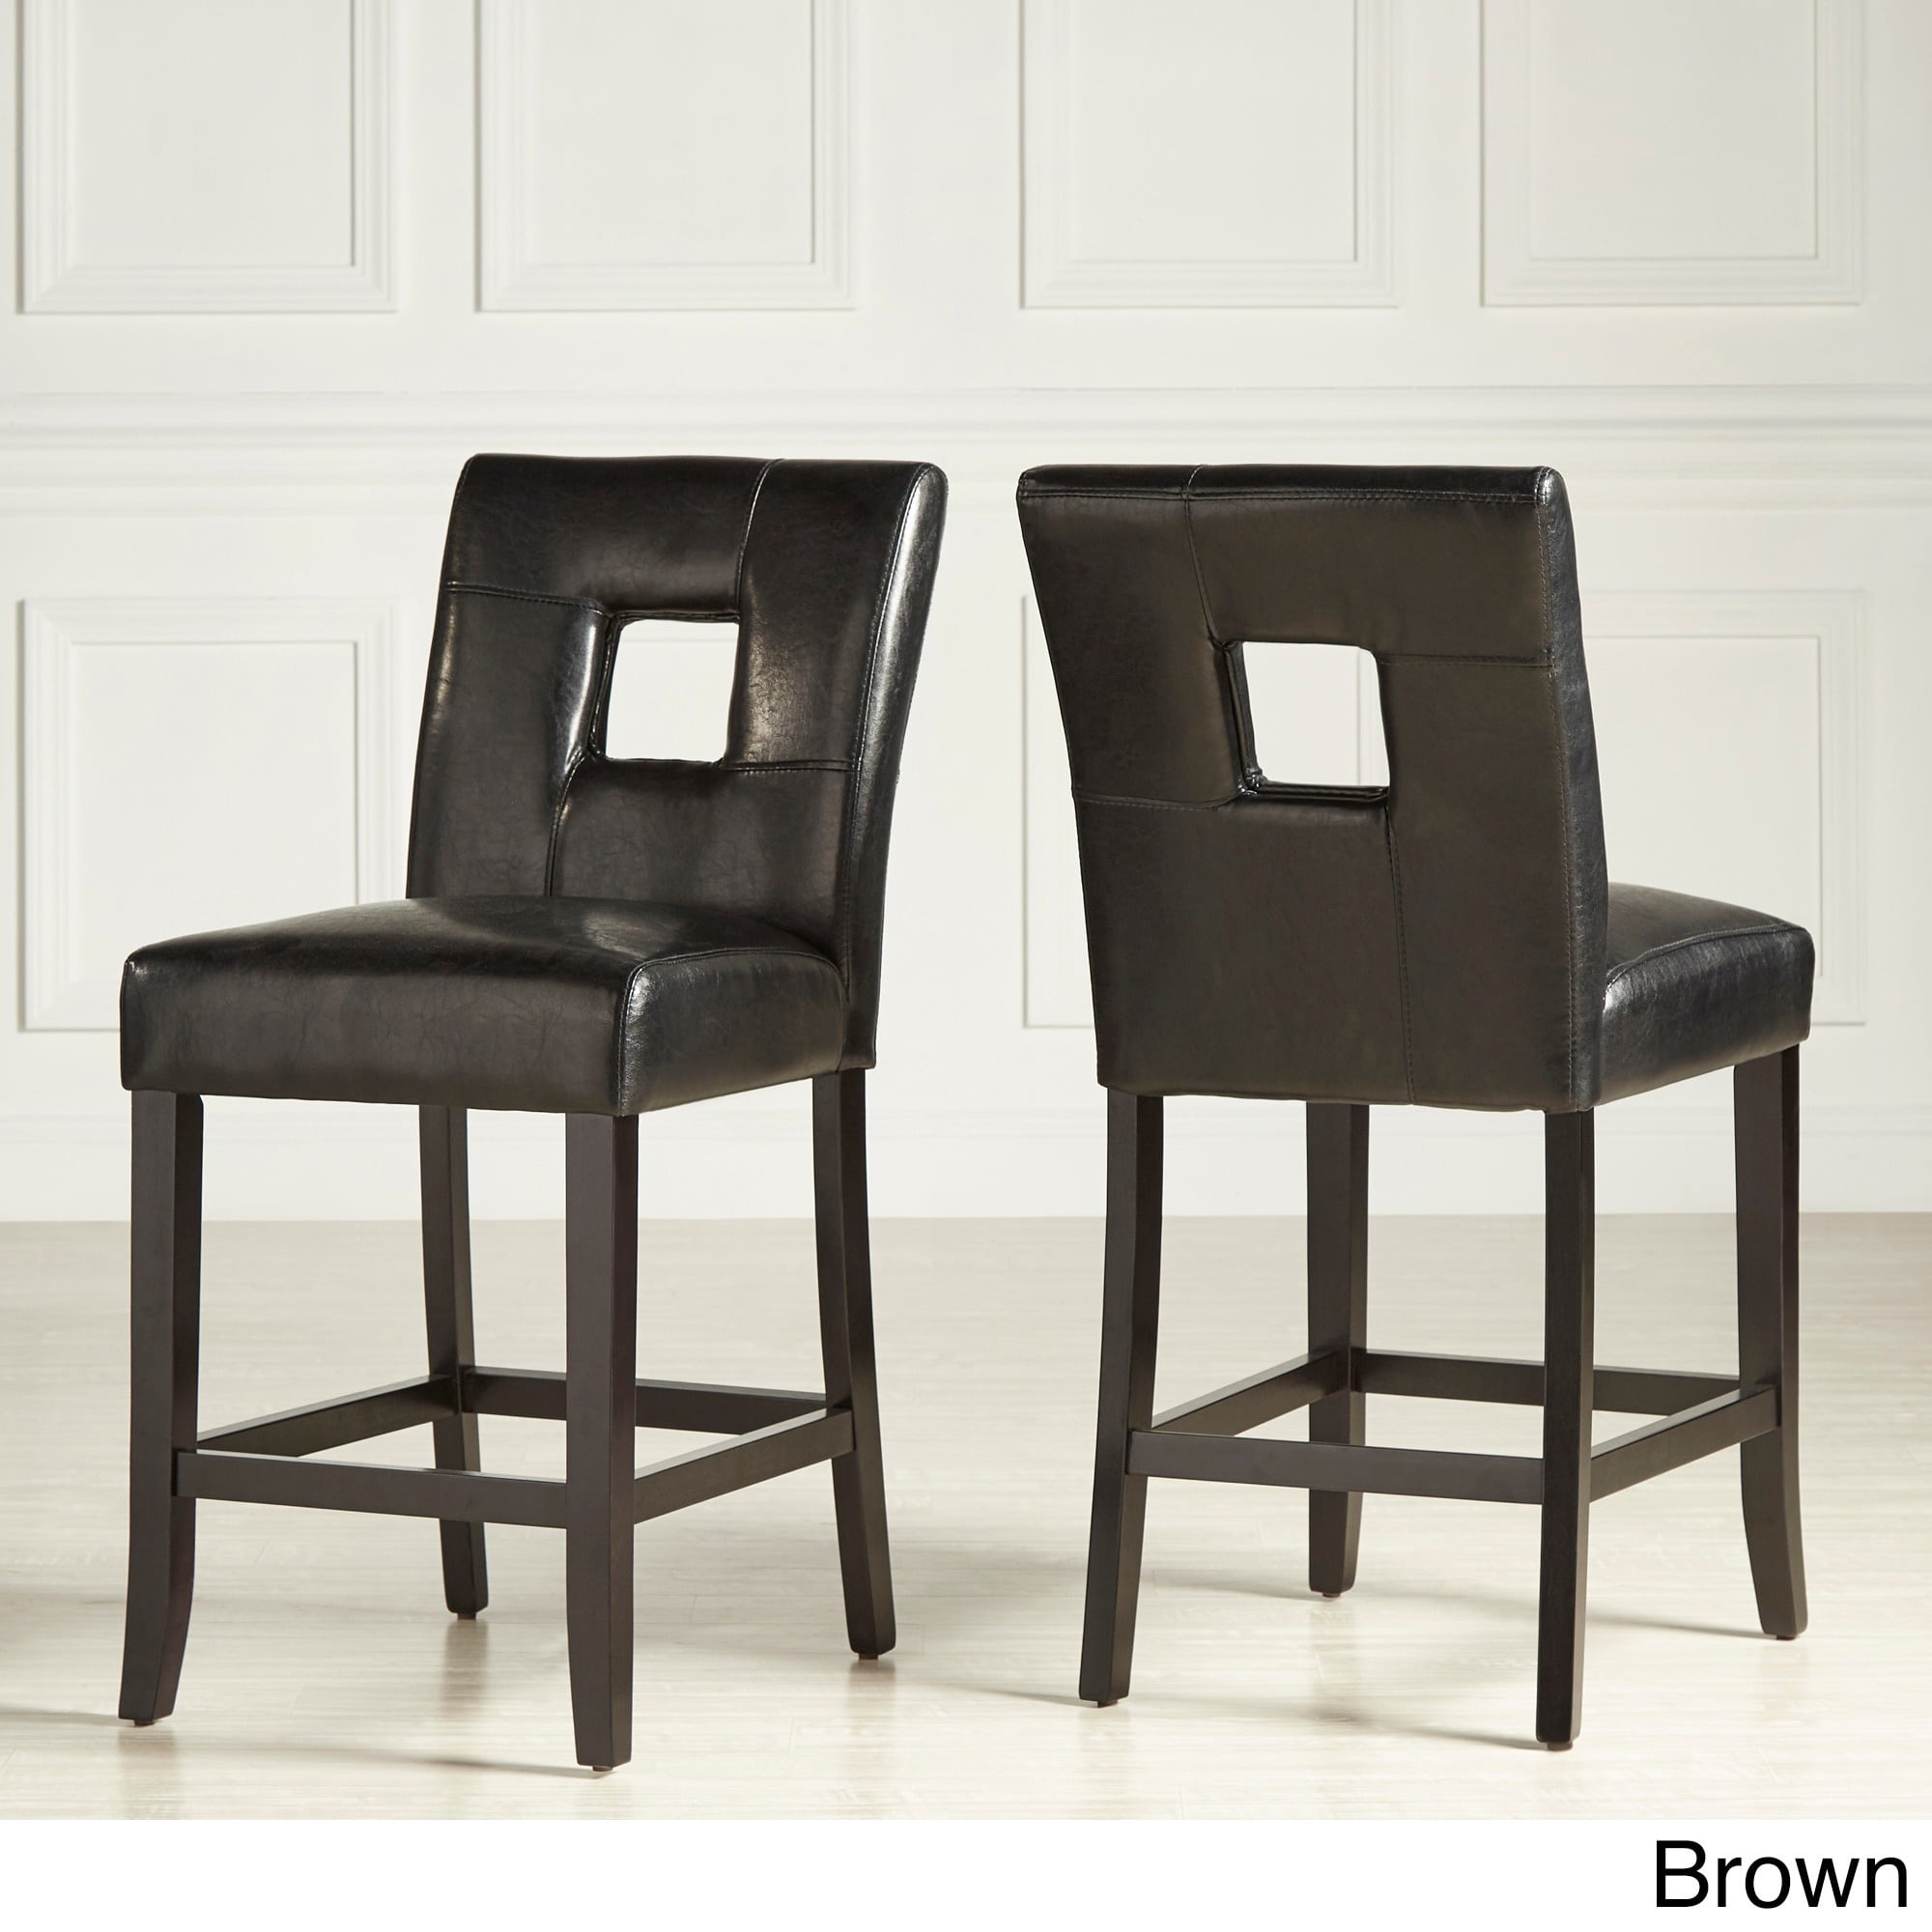 Mendoza Keyhole Counter Height High Back Stool (Set of 2) by iNSPIRE Q Bold  - Free Shipping Today - Overstock.com - 13015301